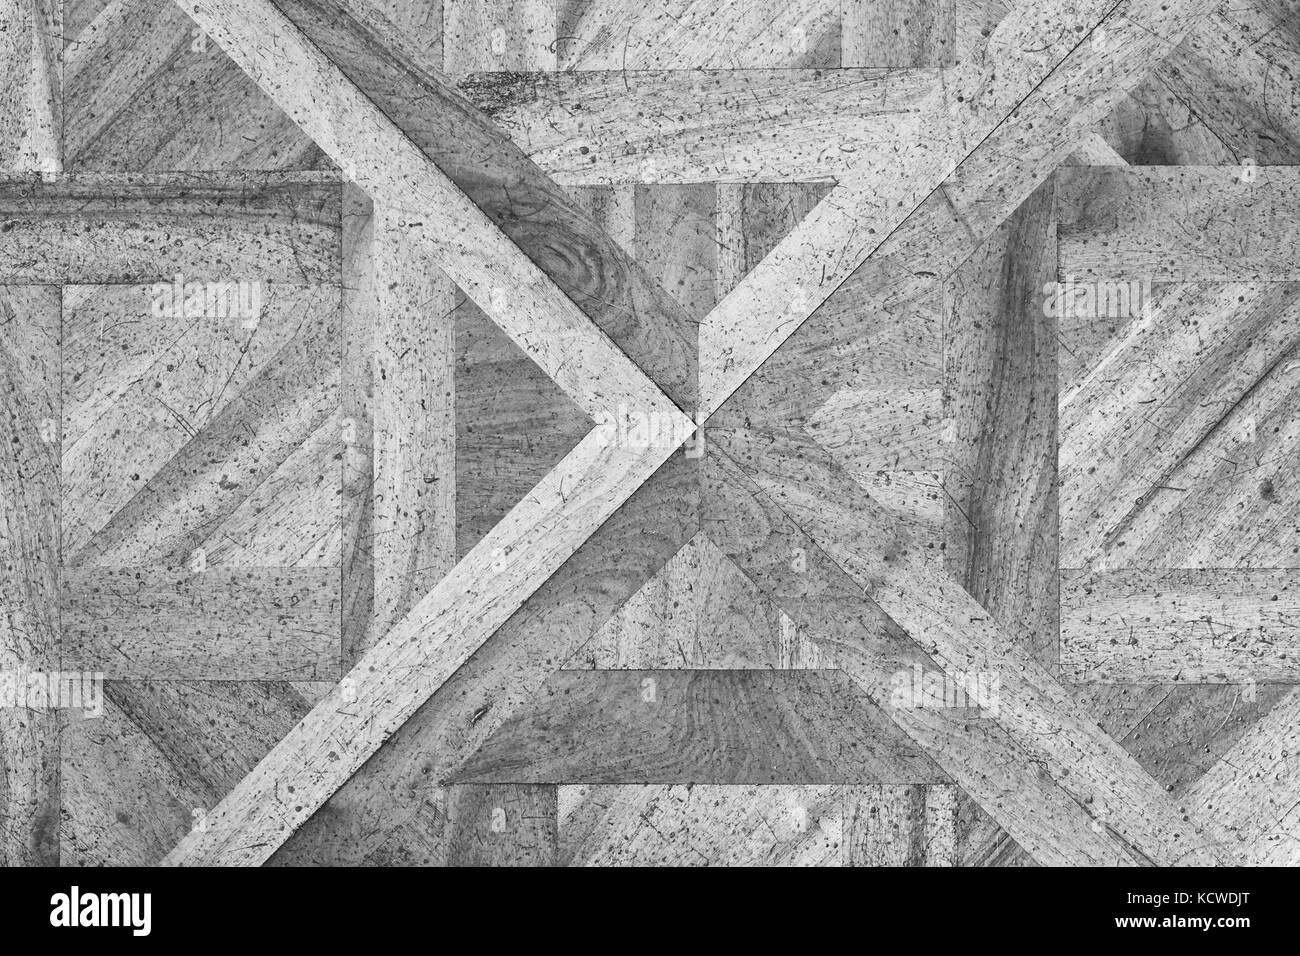 Worn out wooden floor of castle hall. Light wood flooring worn by use with defect - Stock Image